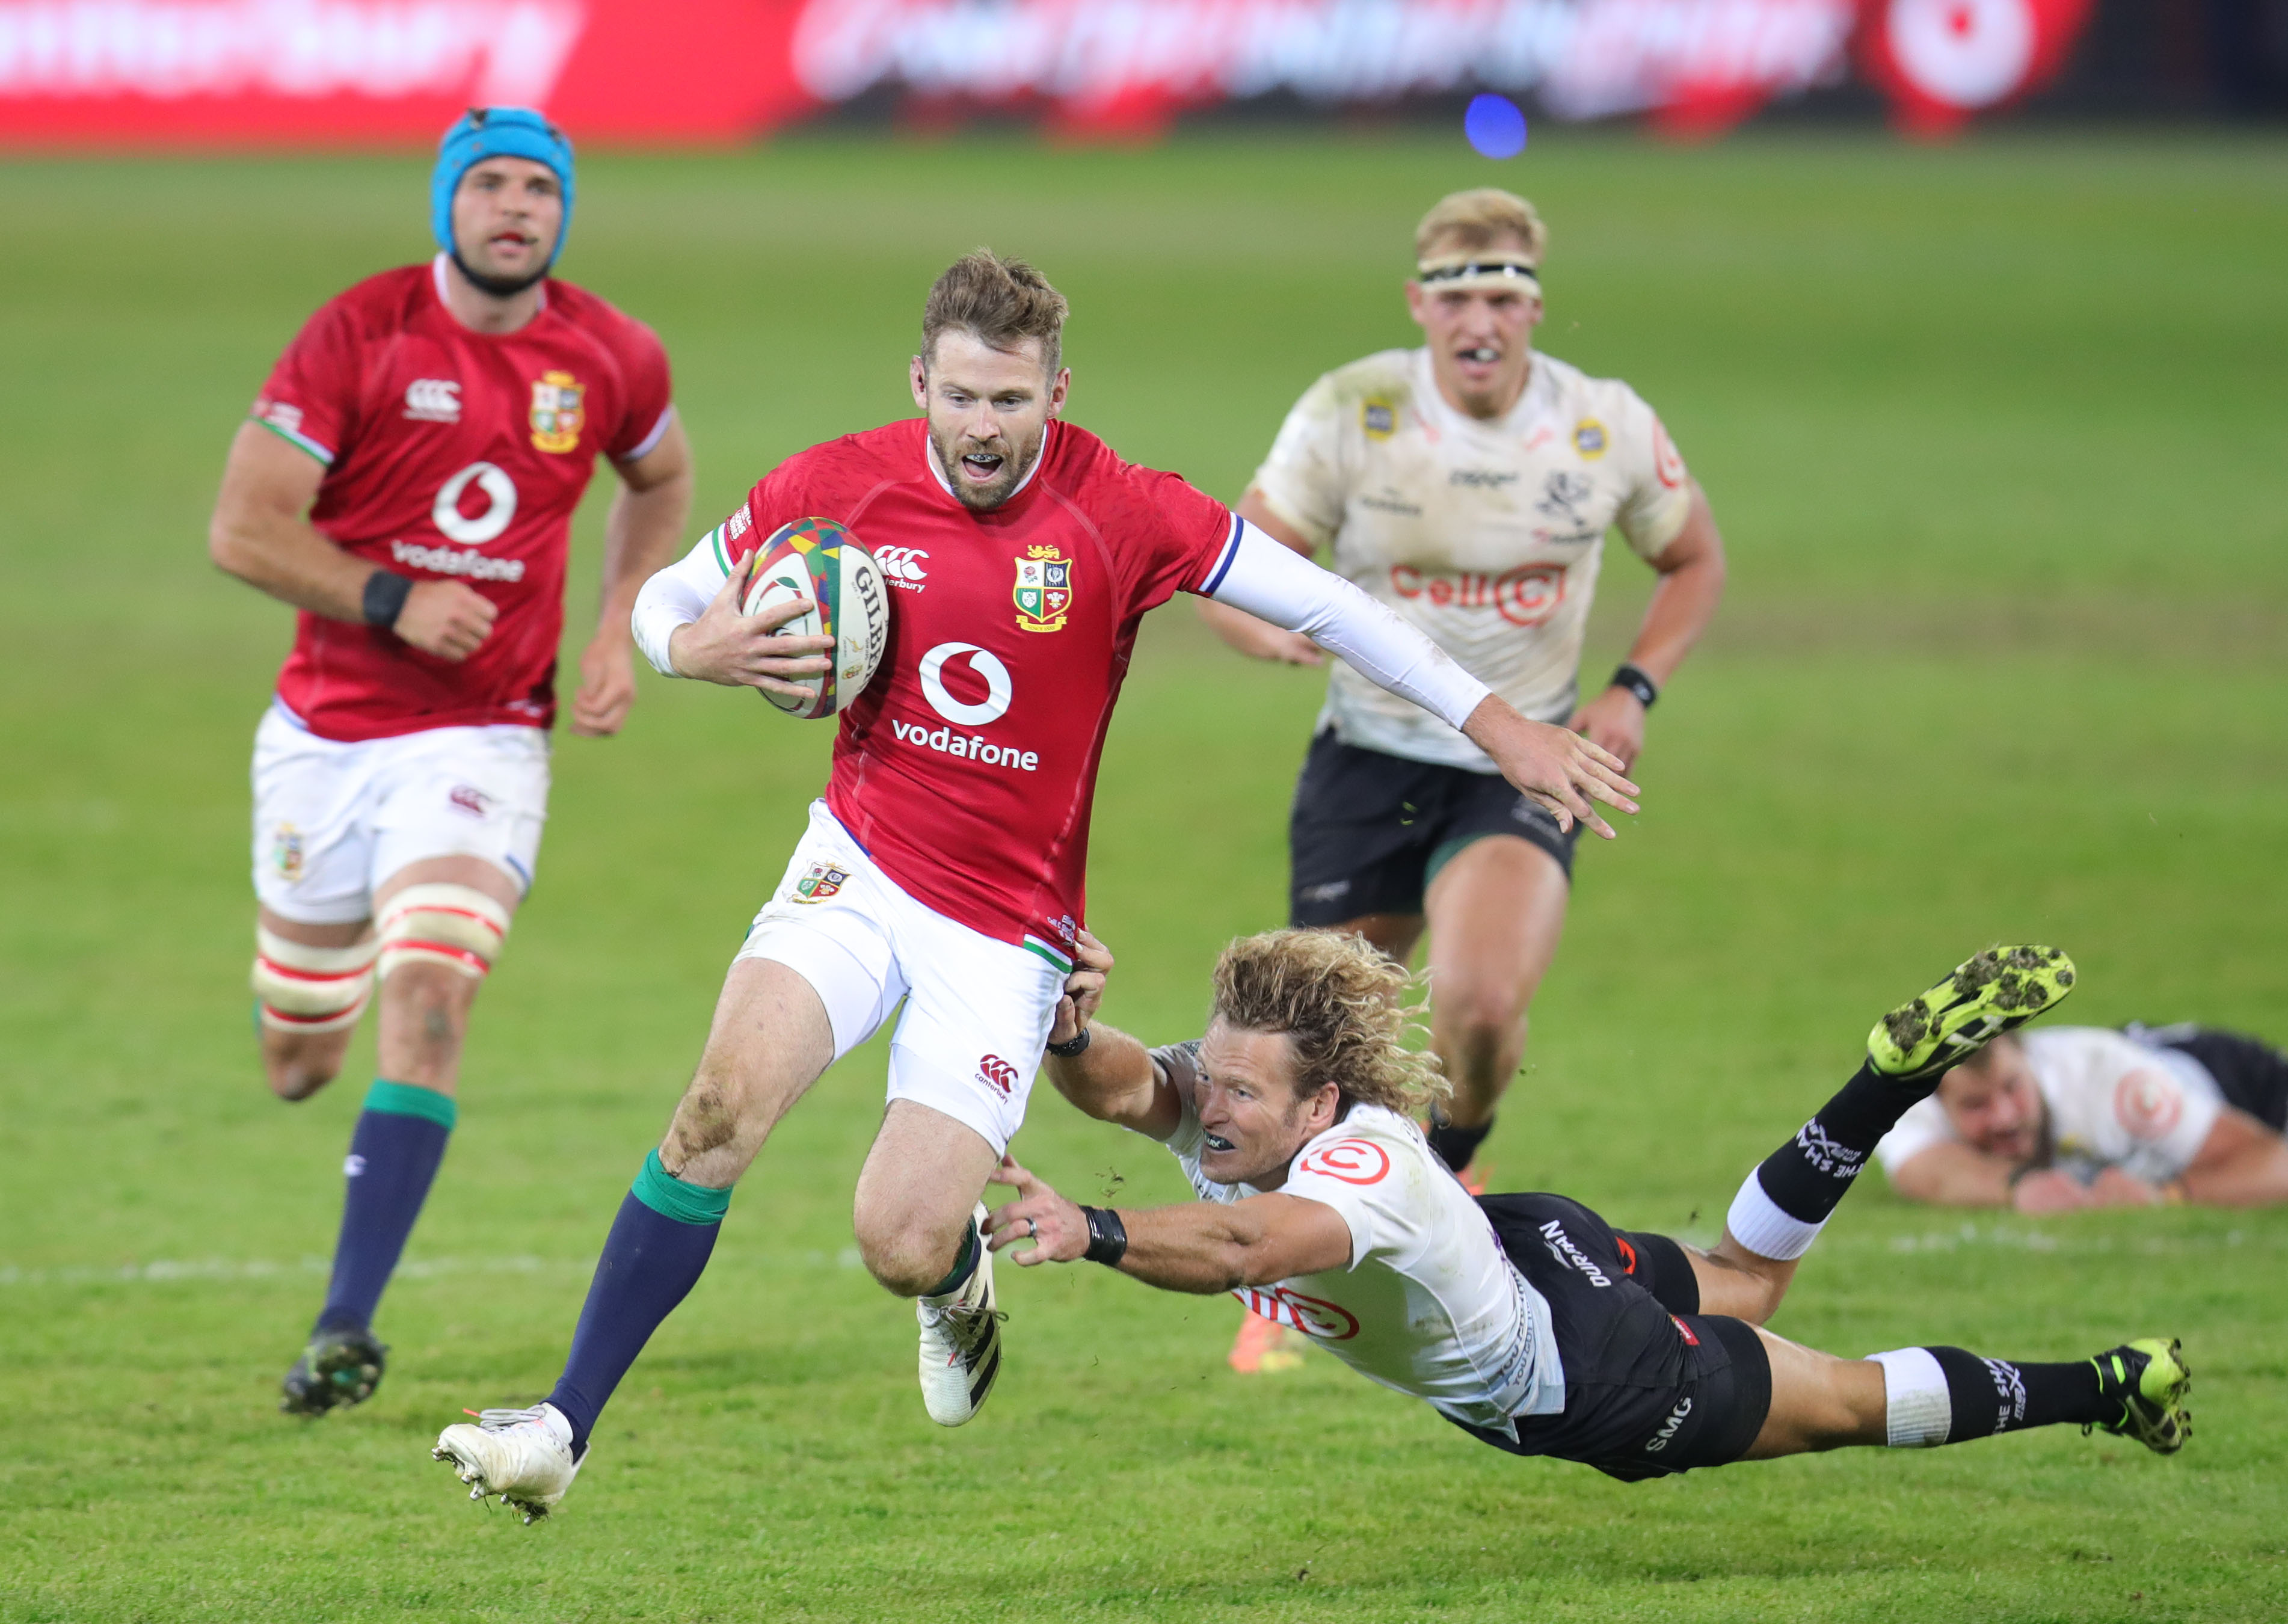 Elliot Daly of the BI Lions evades a tackle from Werner Kok of the Sharks during the 2021 British and Irish Lions Tour rugby match between the Sharks and BI Lions at Loftus Stadium, Pretoria on 10 July 2021 ©Muzi Ntombela/BackpagePix